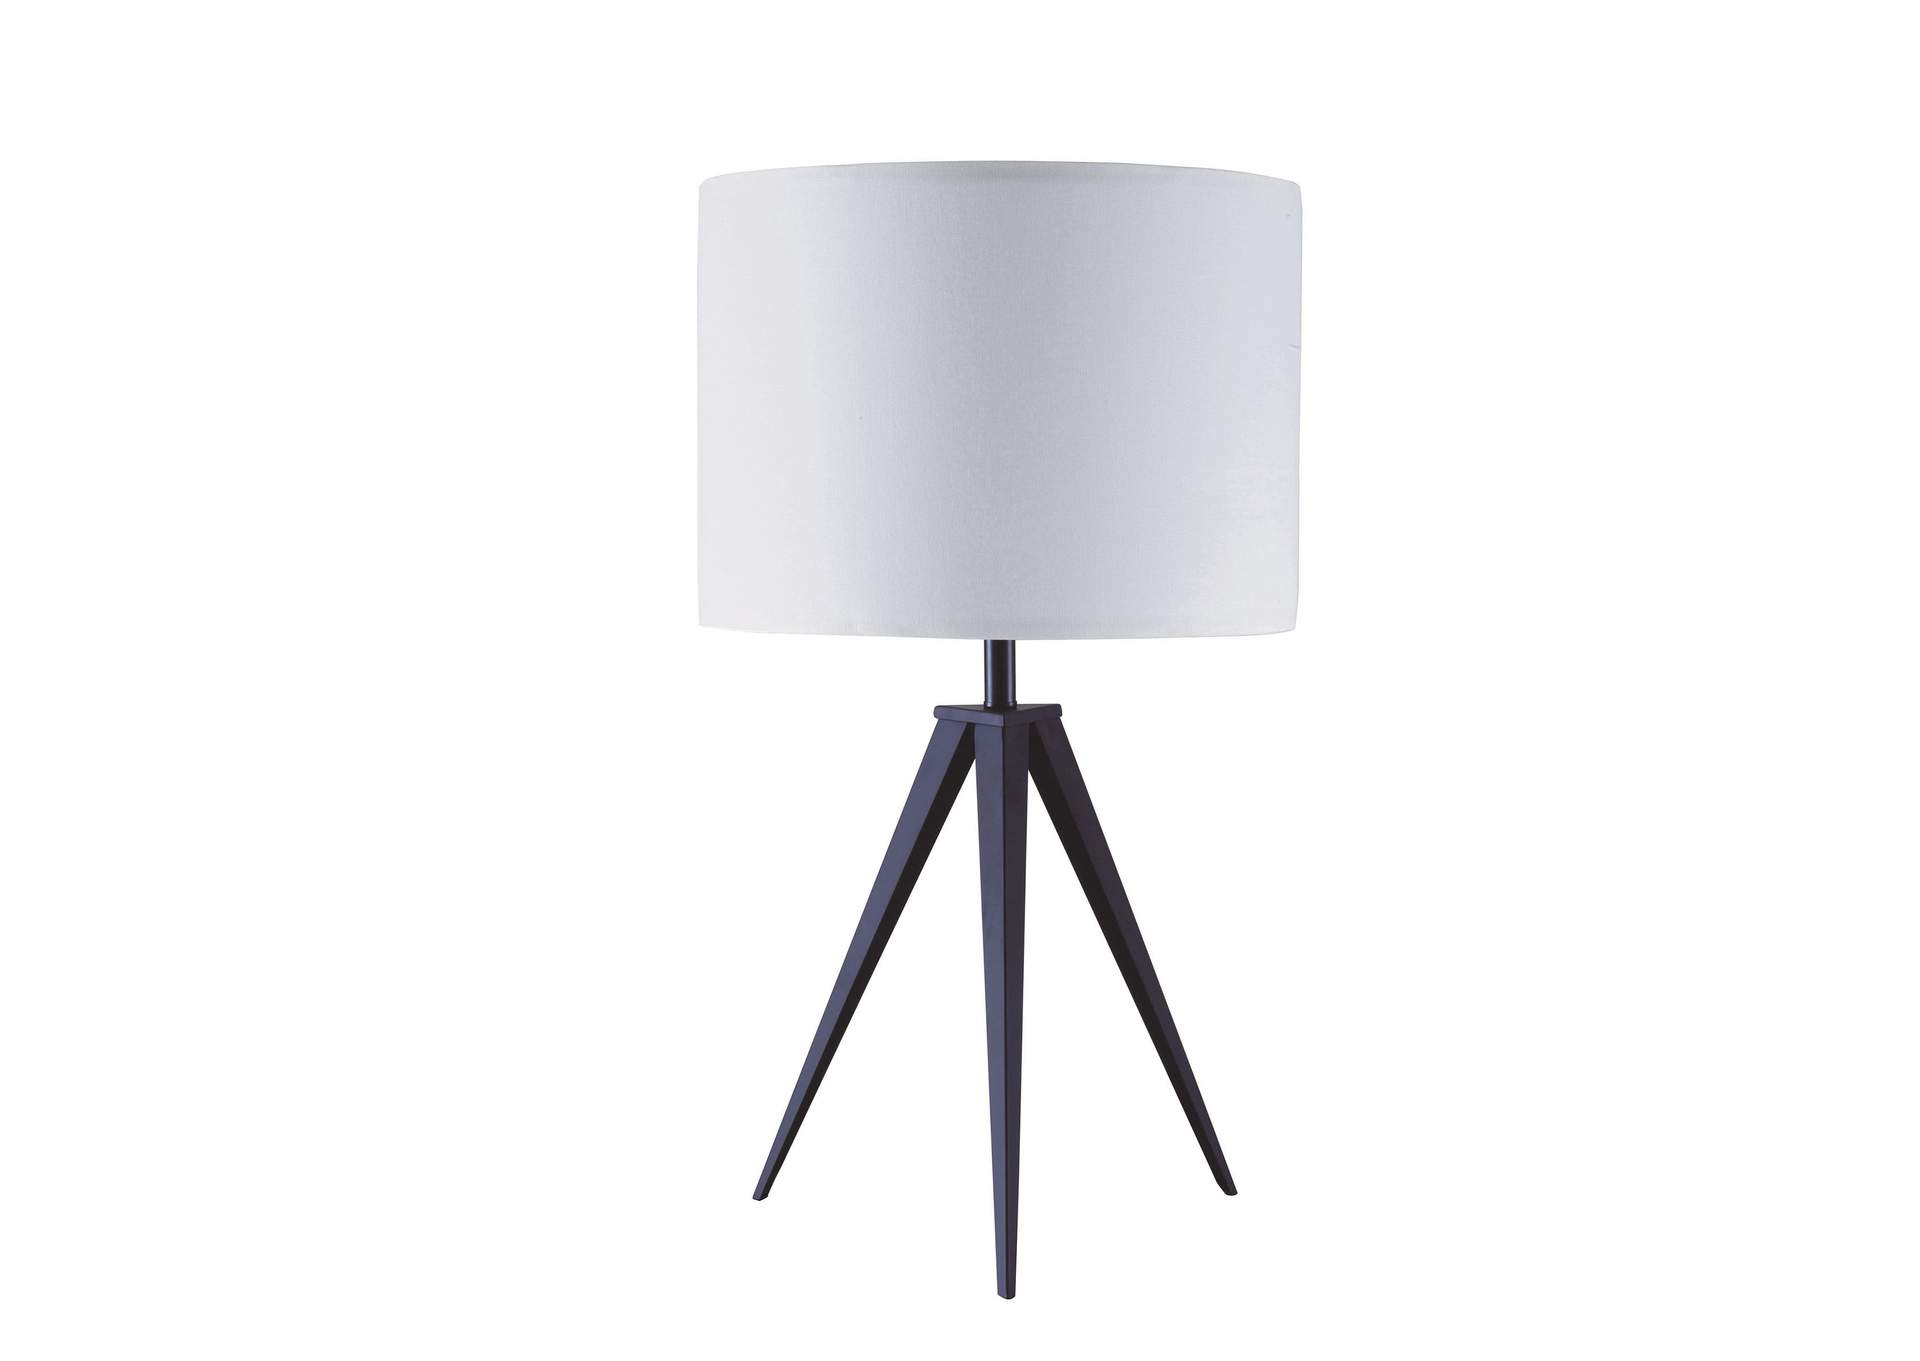 Glynn White/Black Table Lamp,Acme